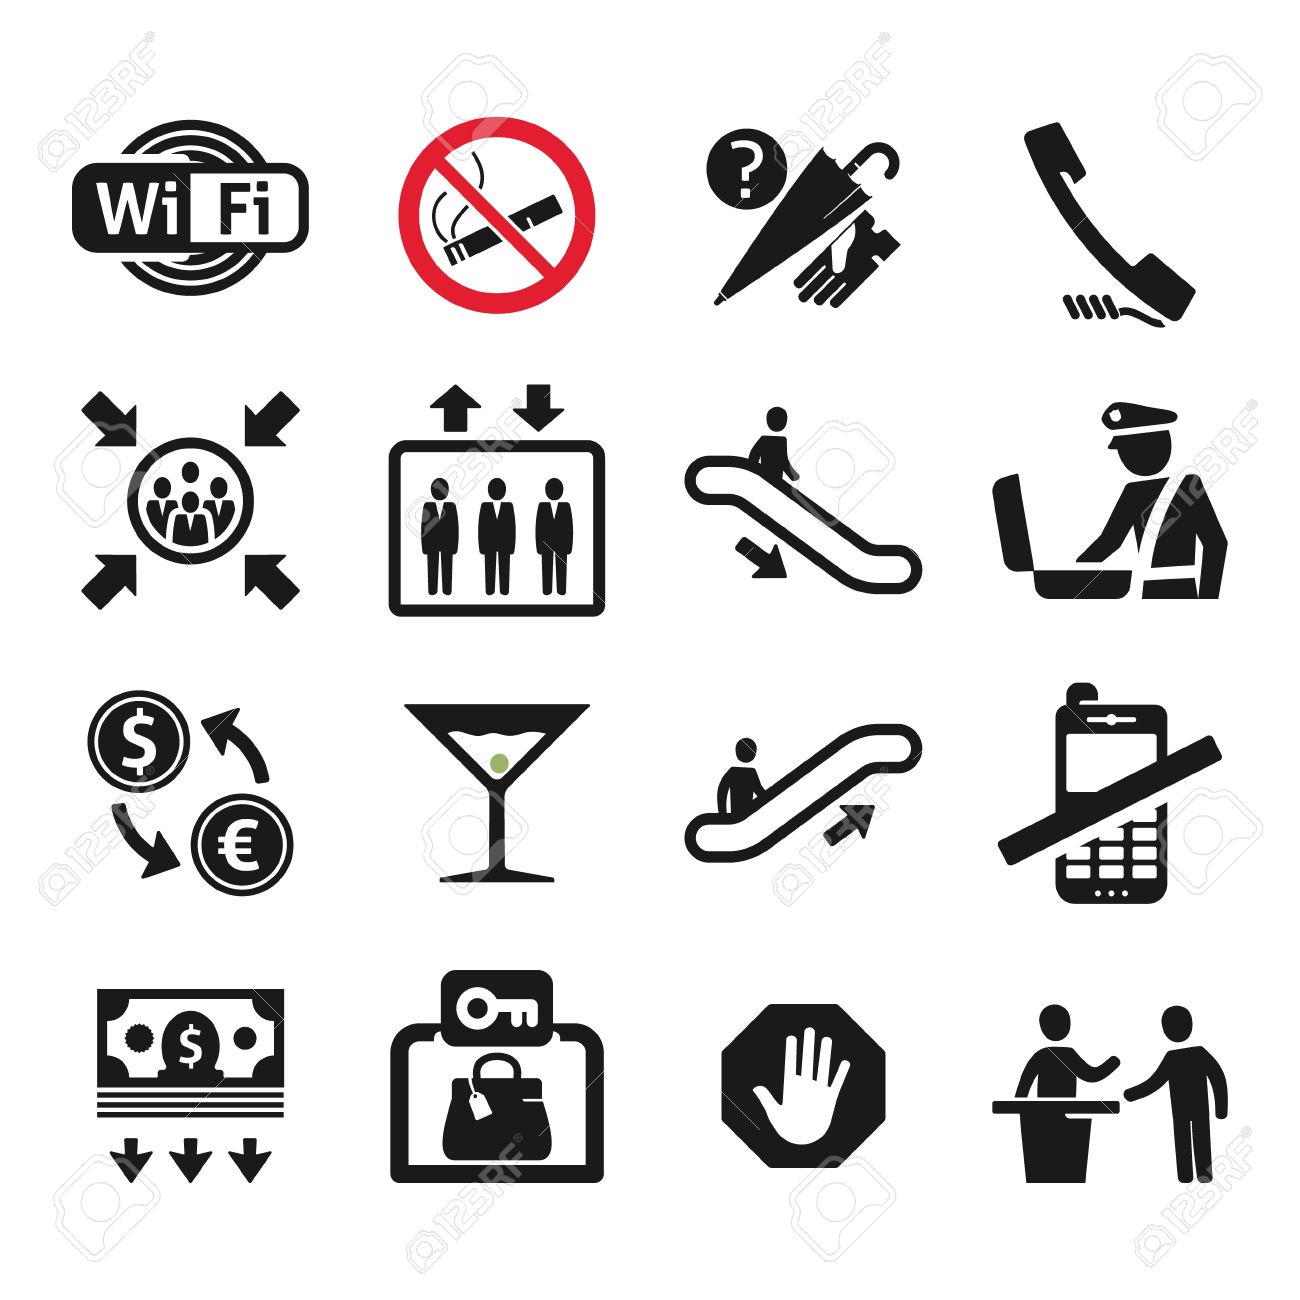 Public places information signs icons set royalty free cliparts public places information signs icons set stock vector 20872528 buycottarizona Image collections